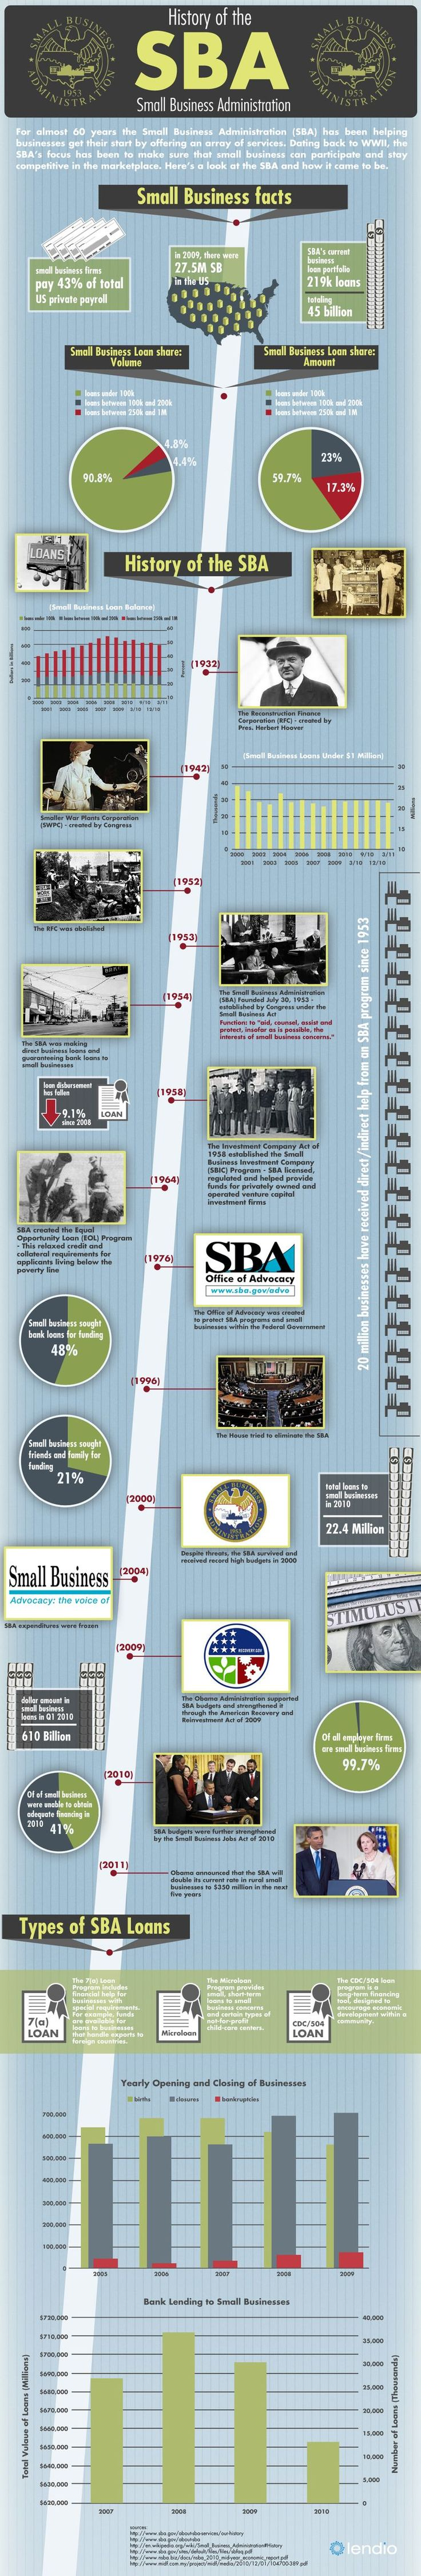 What Has The SBA Small Business Administration Been Up To For The Past 60 Years? #infographic